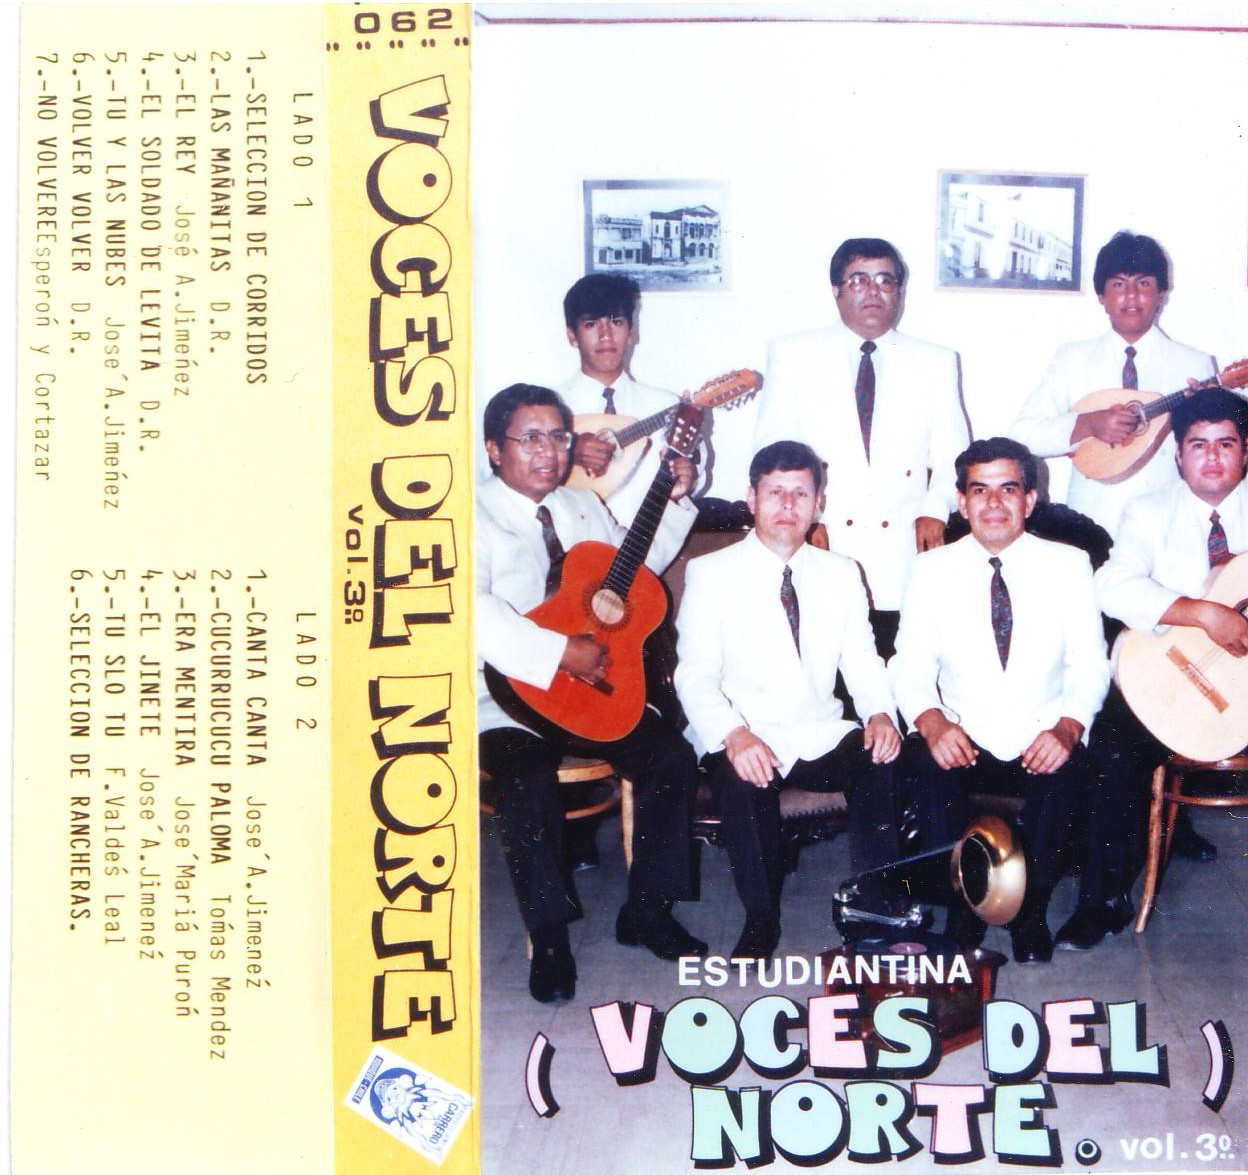 Estudiantina Voces del Norte